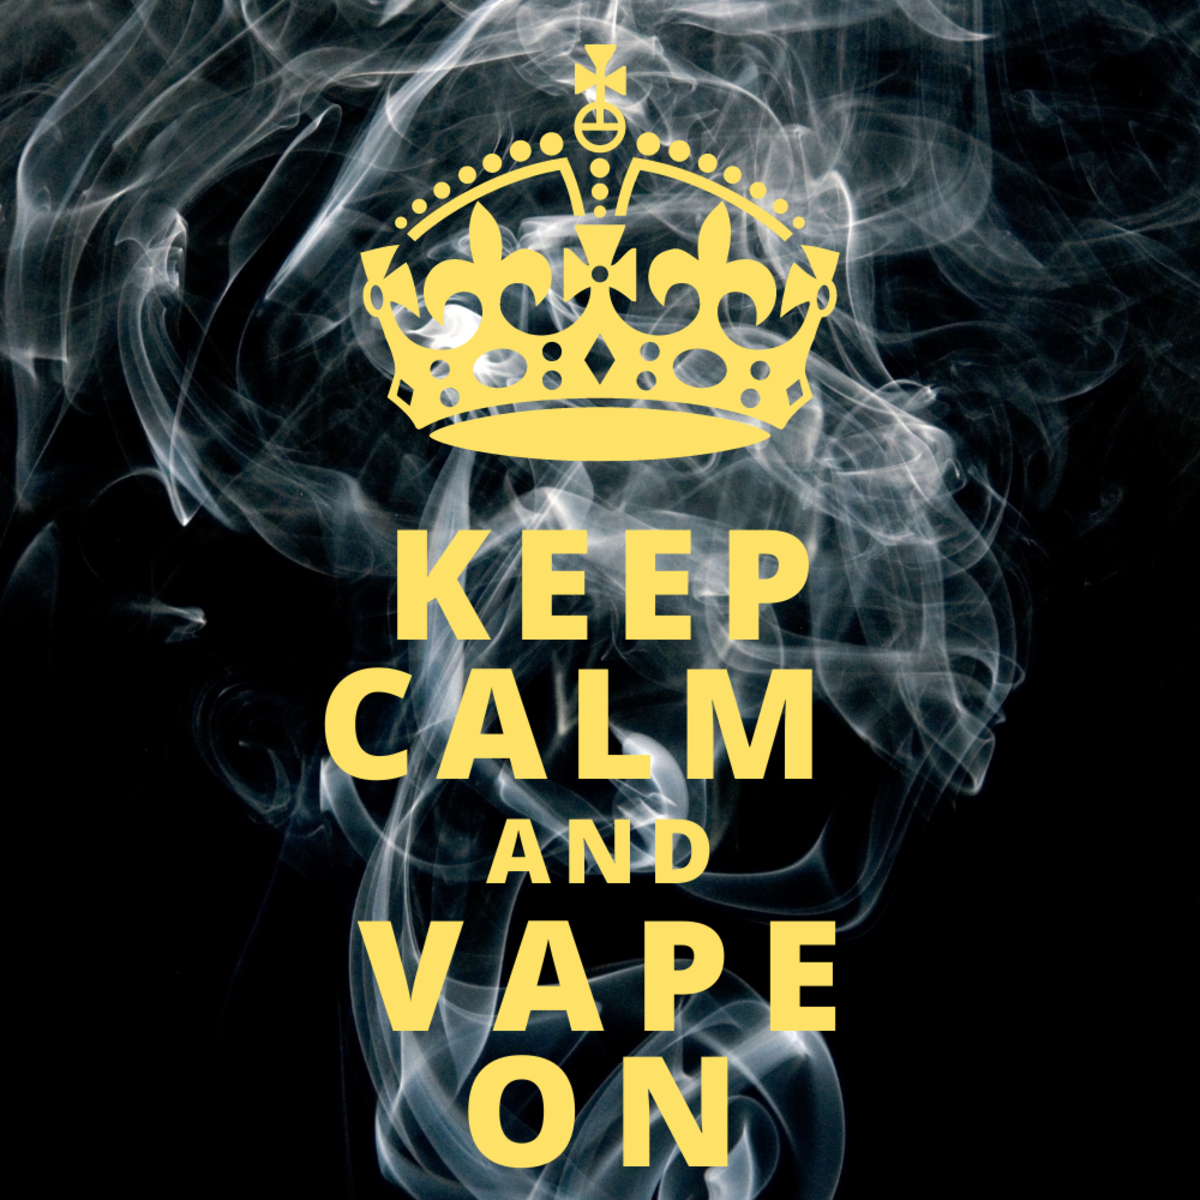 Vape Hate: Is Vaping So Dangerous?